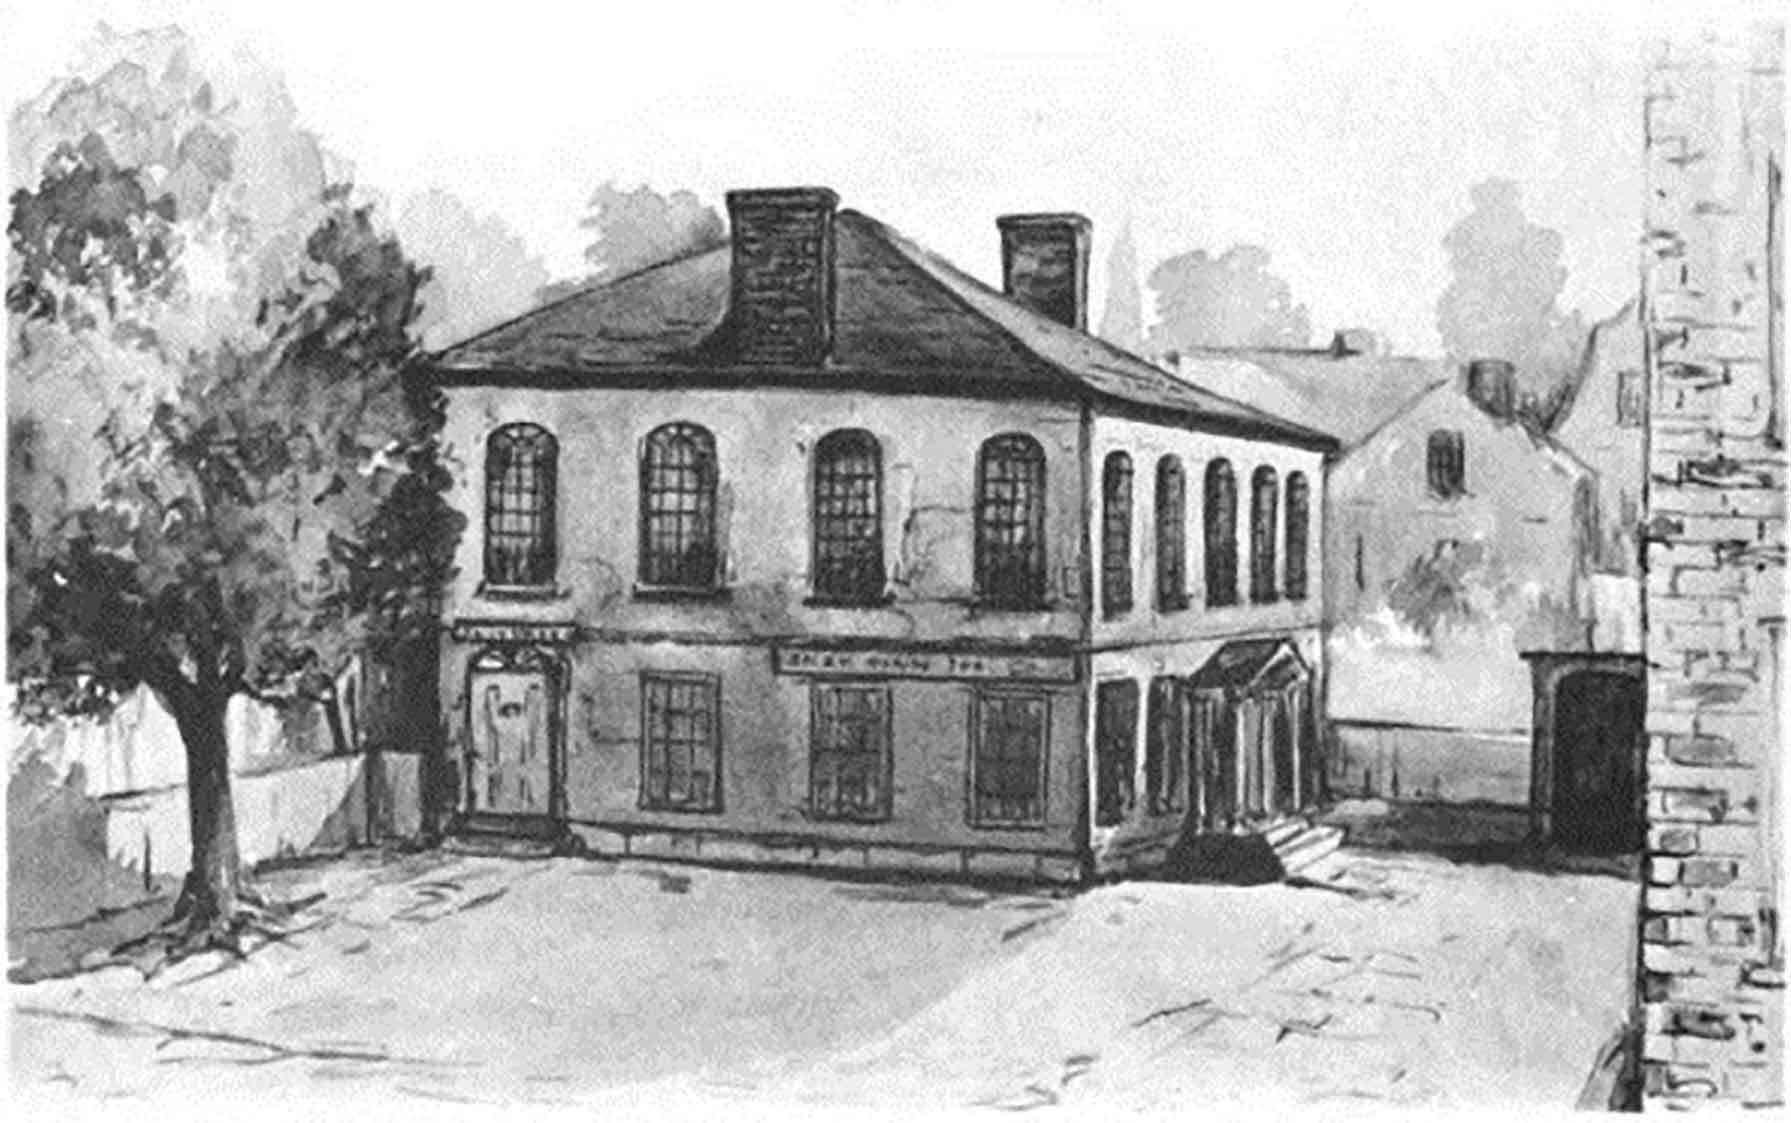 Mary Mason Brooks, Salem Bank Building about 1804–1825, about 1888. India ink on paper